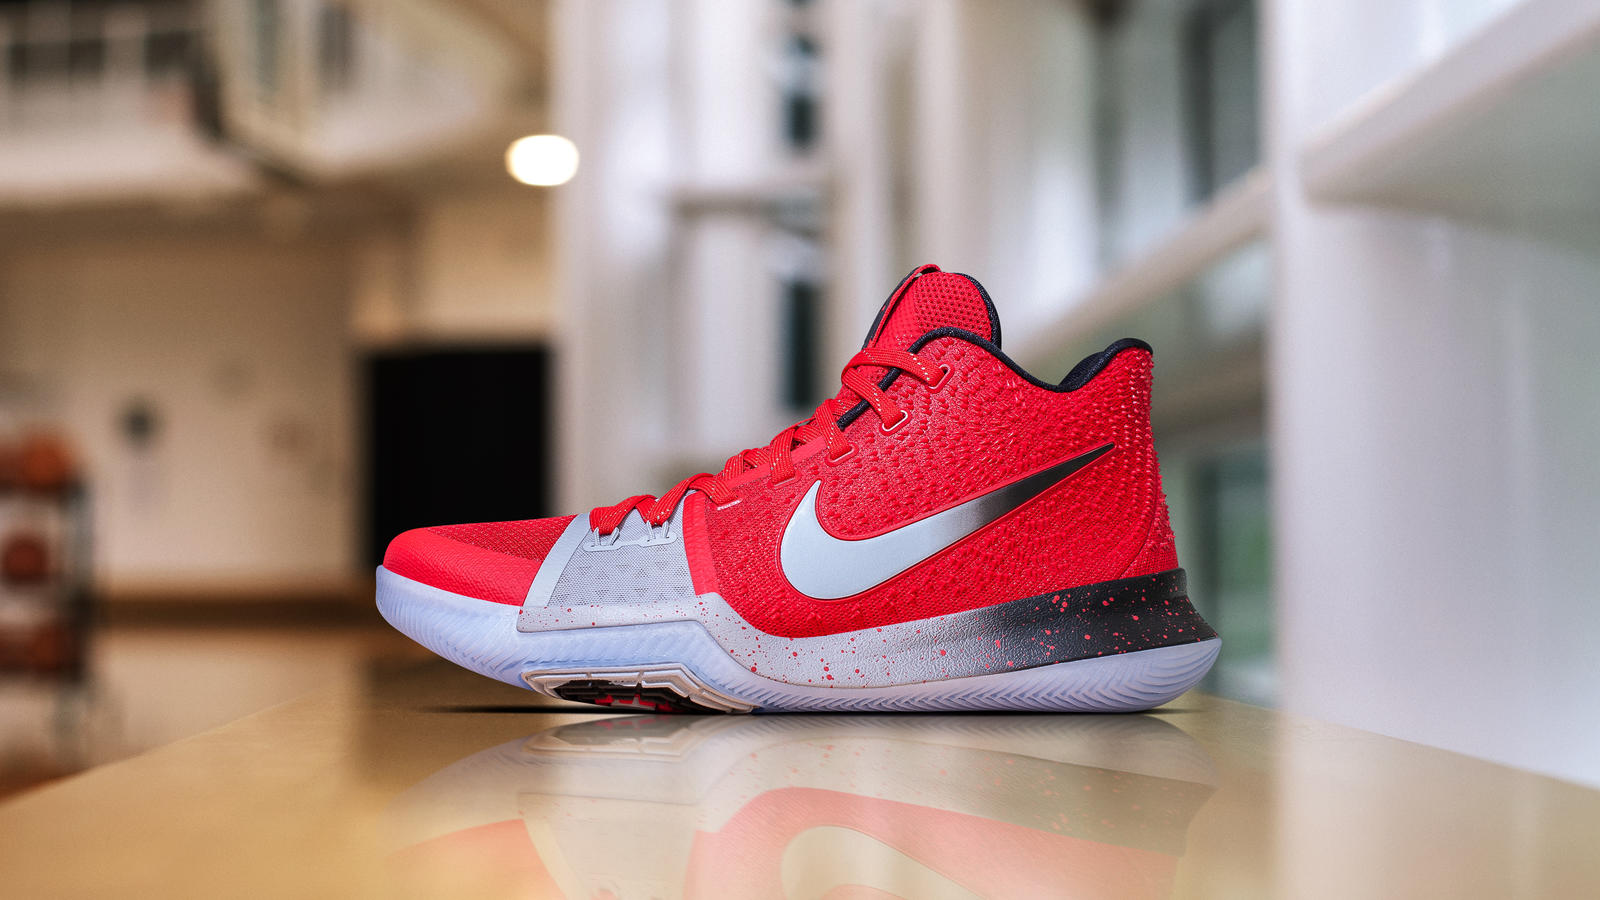 authentic nike kyrie 3 weave dark grey black red latest 56bf2 48fdd   discount kyrie 3 pe. dsc 5184 hd 1600 d1fa3 fded9 f3782d6b5d